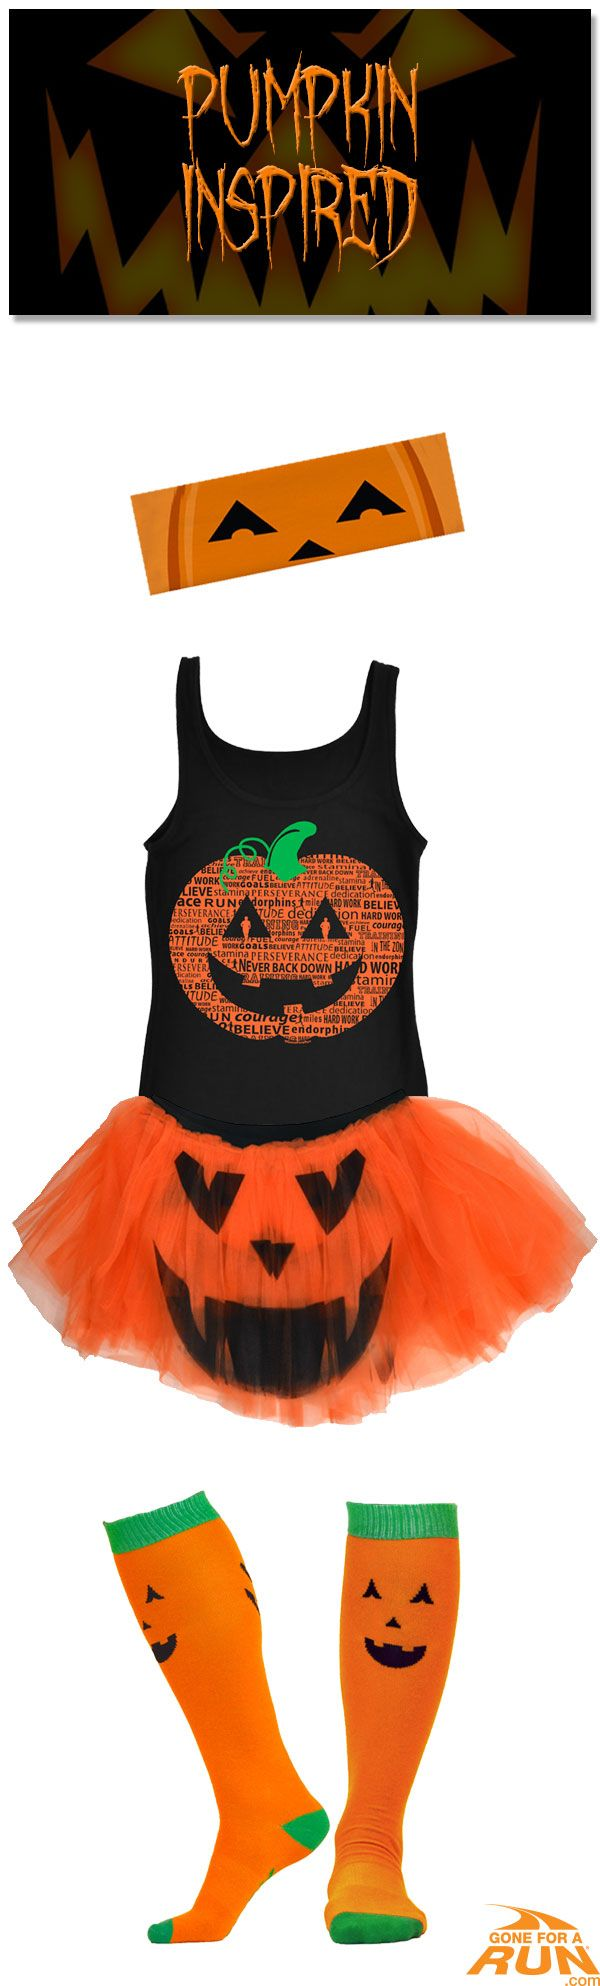 Trick or run? I'd choose run! With our double sided pumpkin tutu you never know which mood you'll get! Get in a spooky fun mood with our #Halloween inspired running apparel! From shirts to socks and more, you'll find something to suit you and your running friends haunted moods! Make up your own costume, or check out one of our original ideas! Make your run as jolly as Jack O' Lantern with our Women's pumpkin inspired Halloween runner's costume!